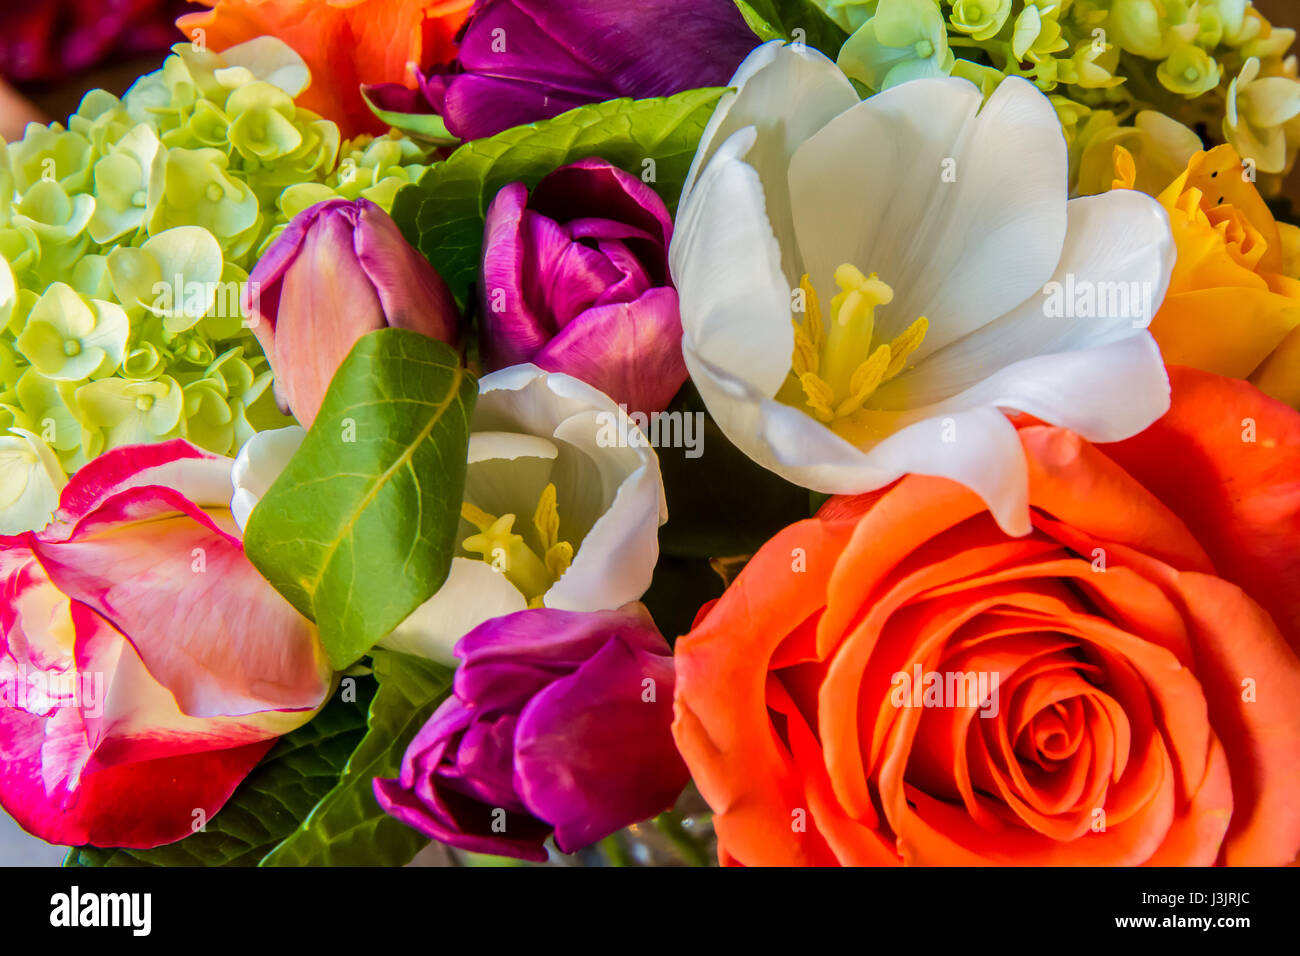 closeup of colorful flower arrangement with various colors of roses ...